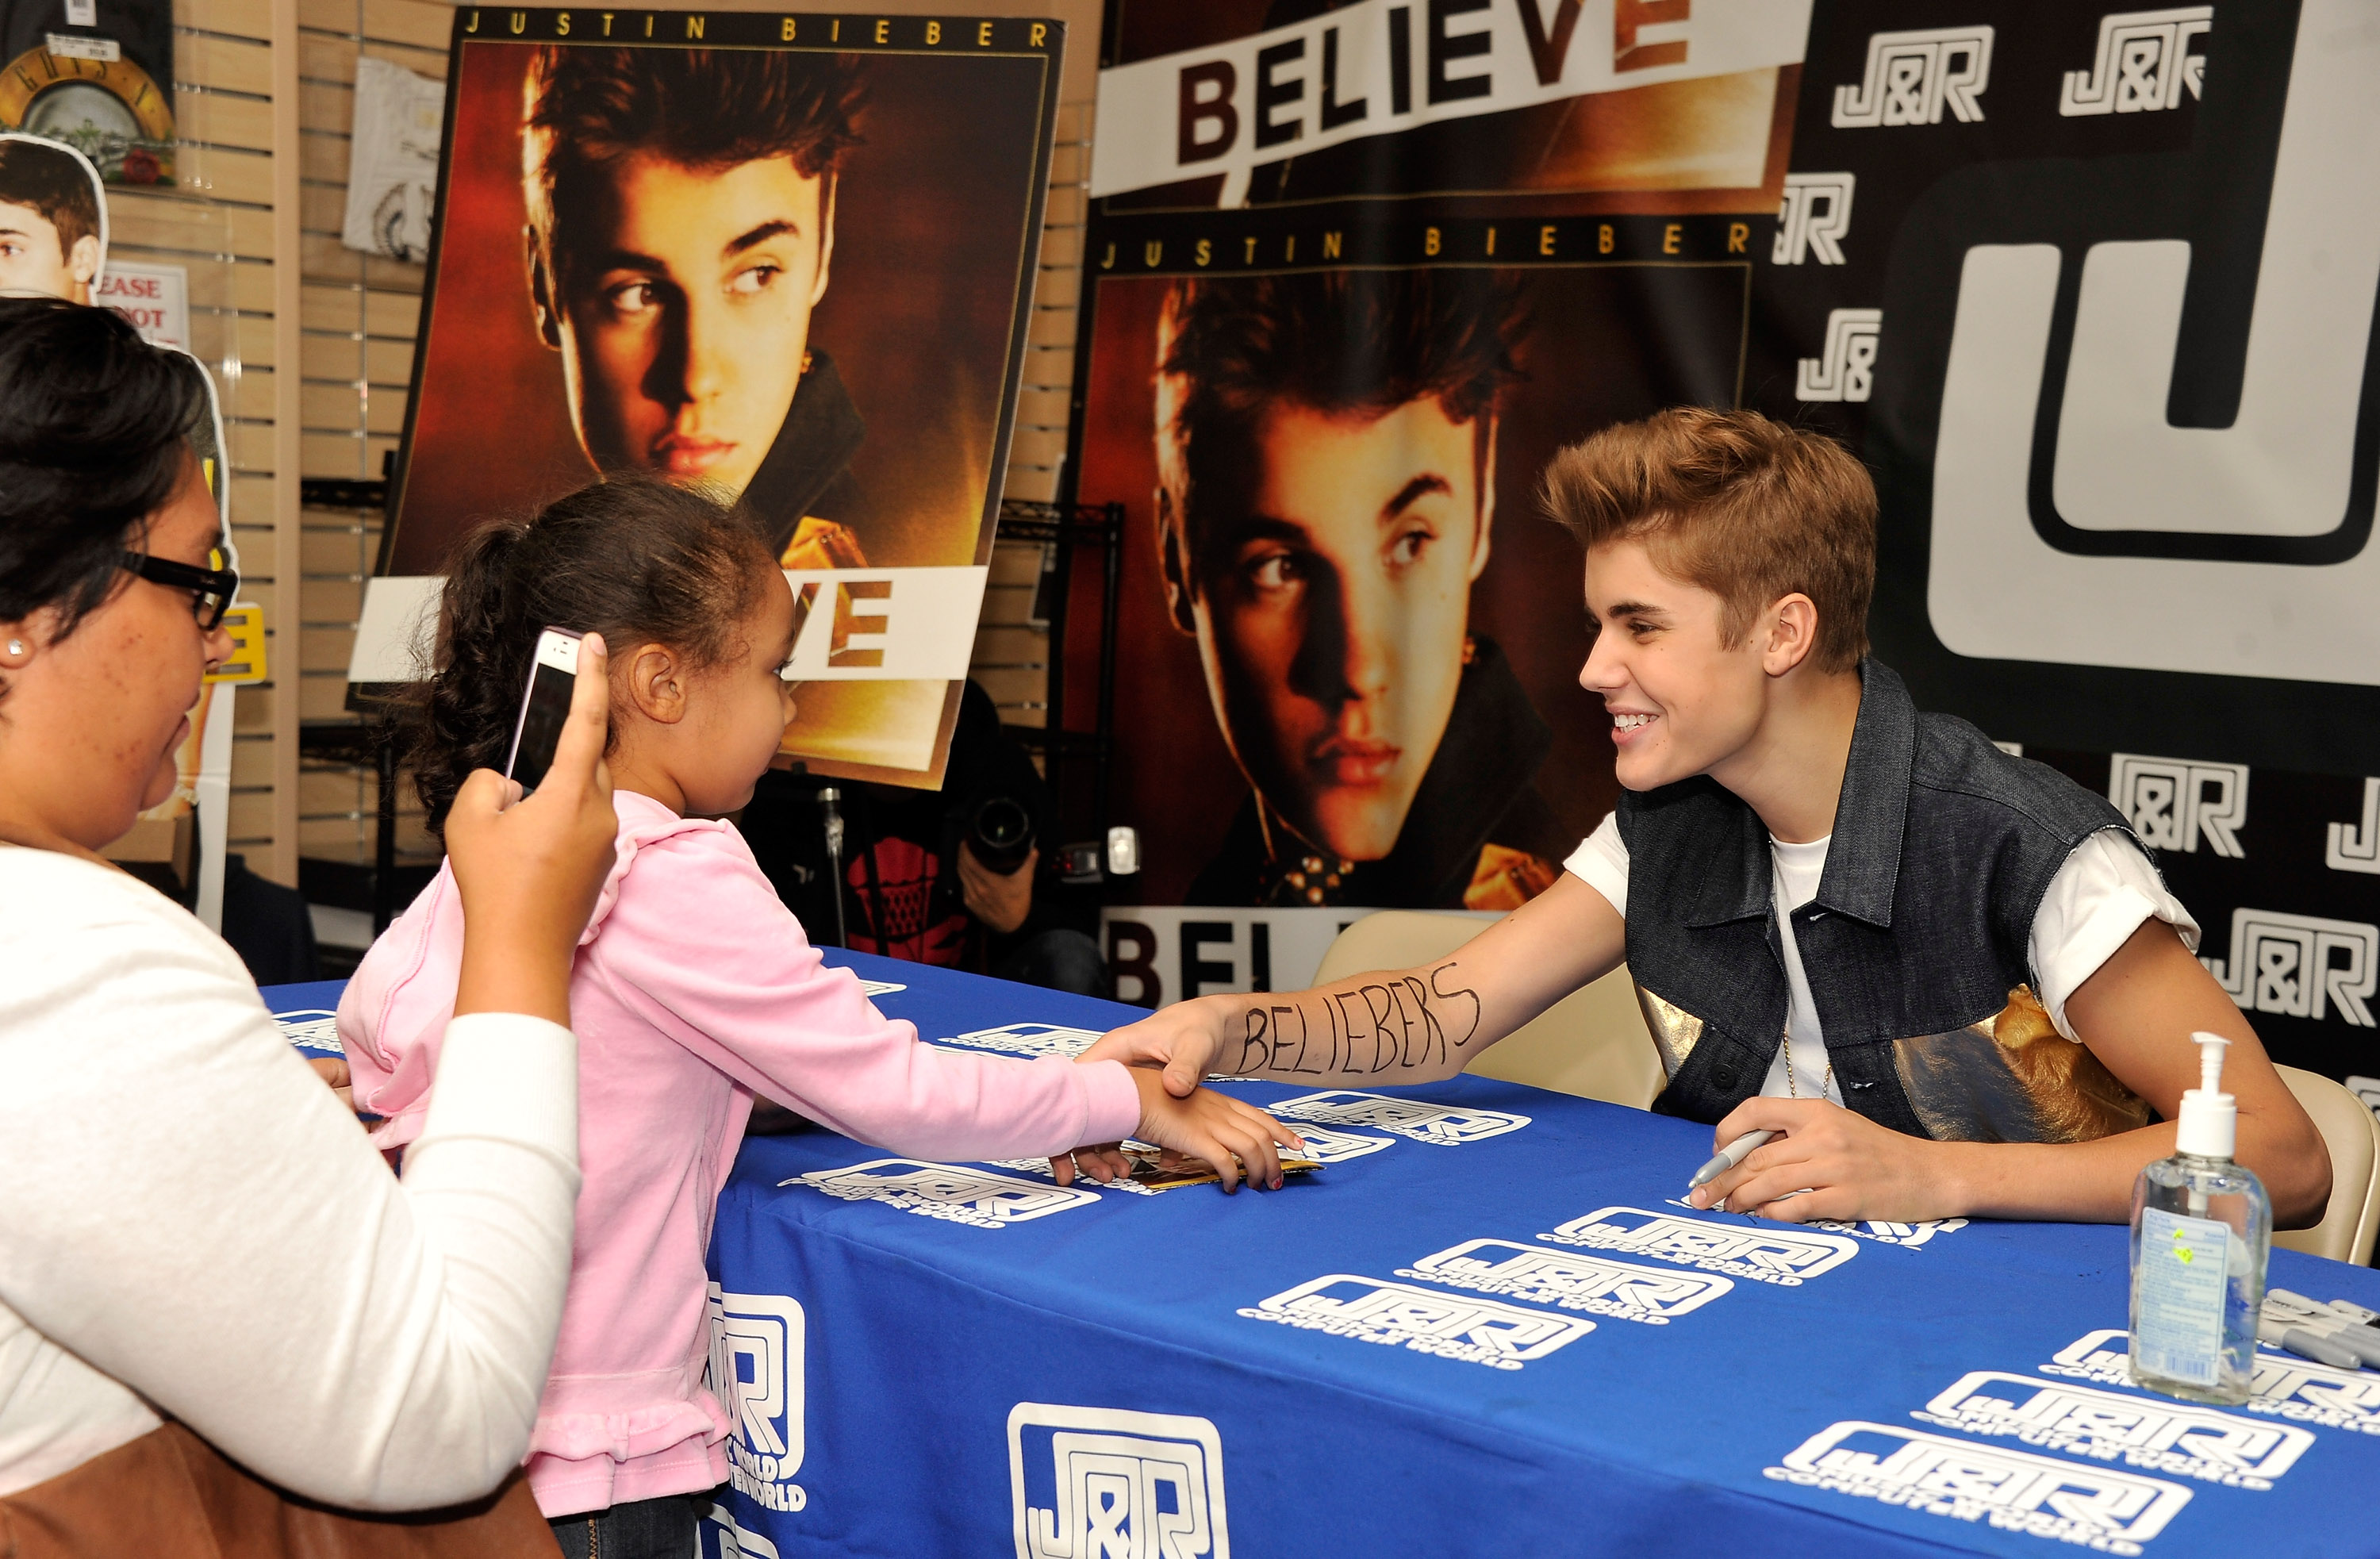 What does the signature of Justin Bieber mean?